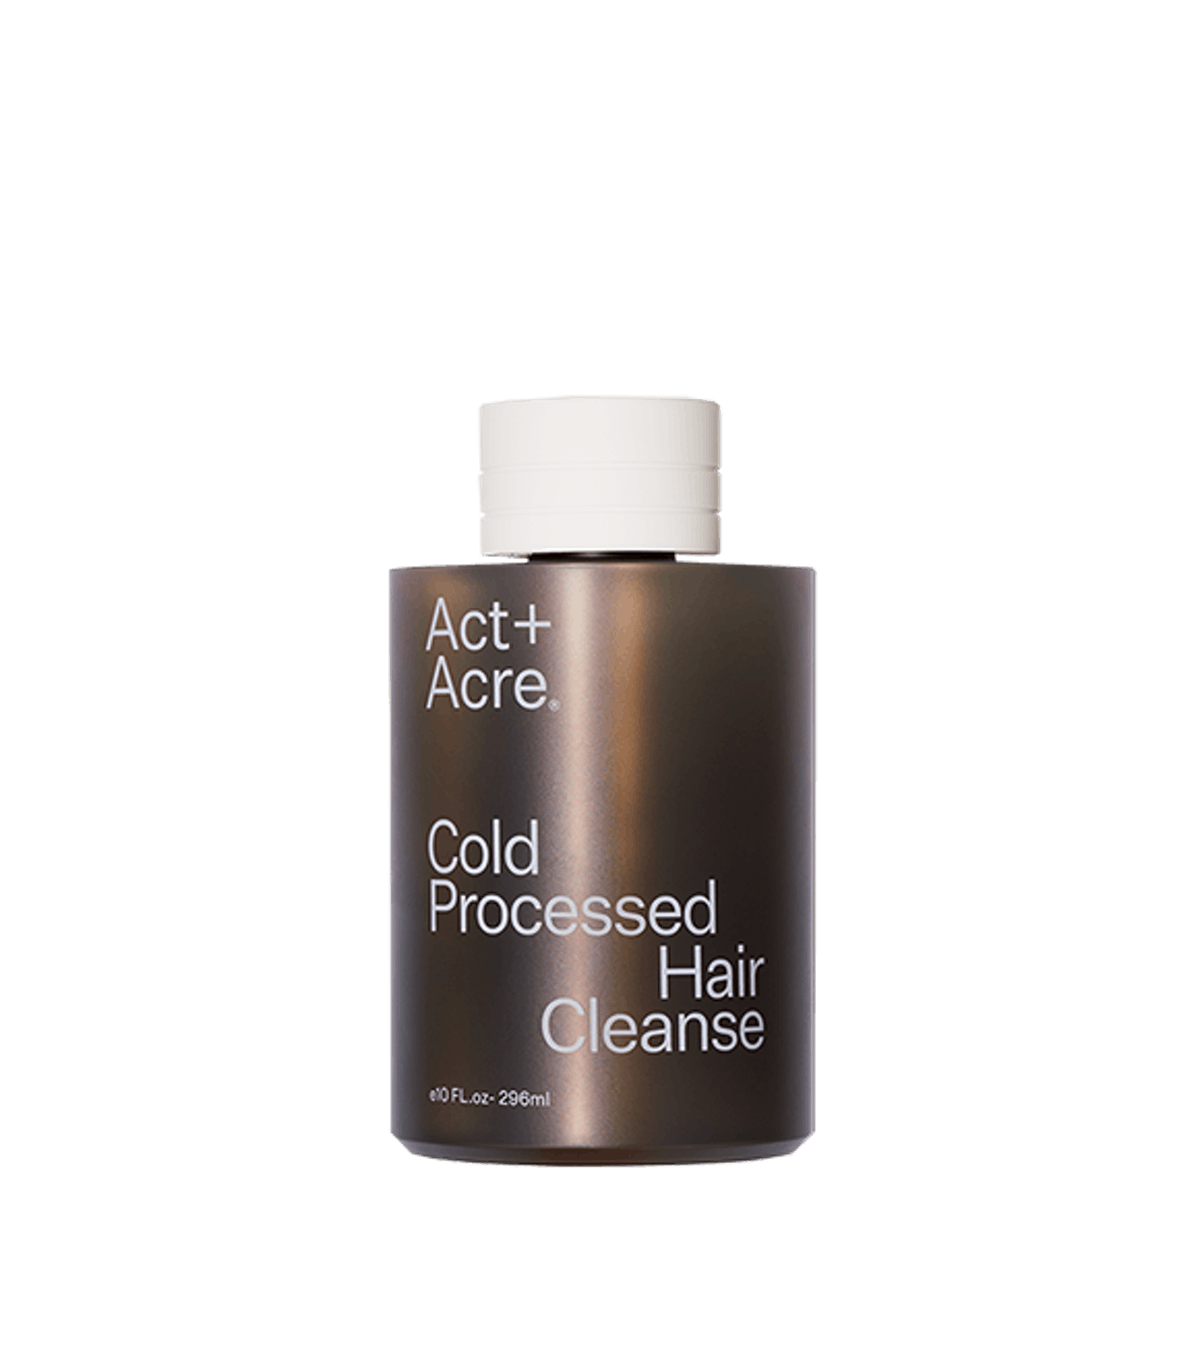 Cold Processed Hair Cleanse